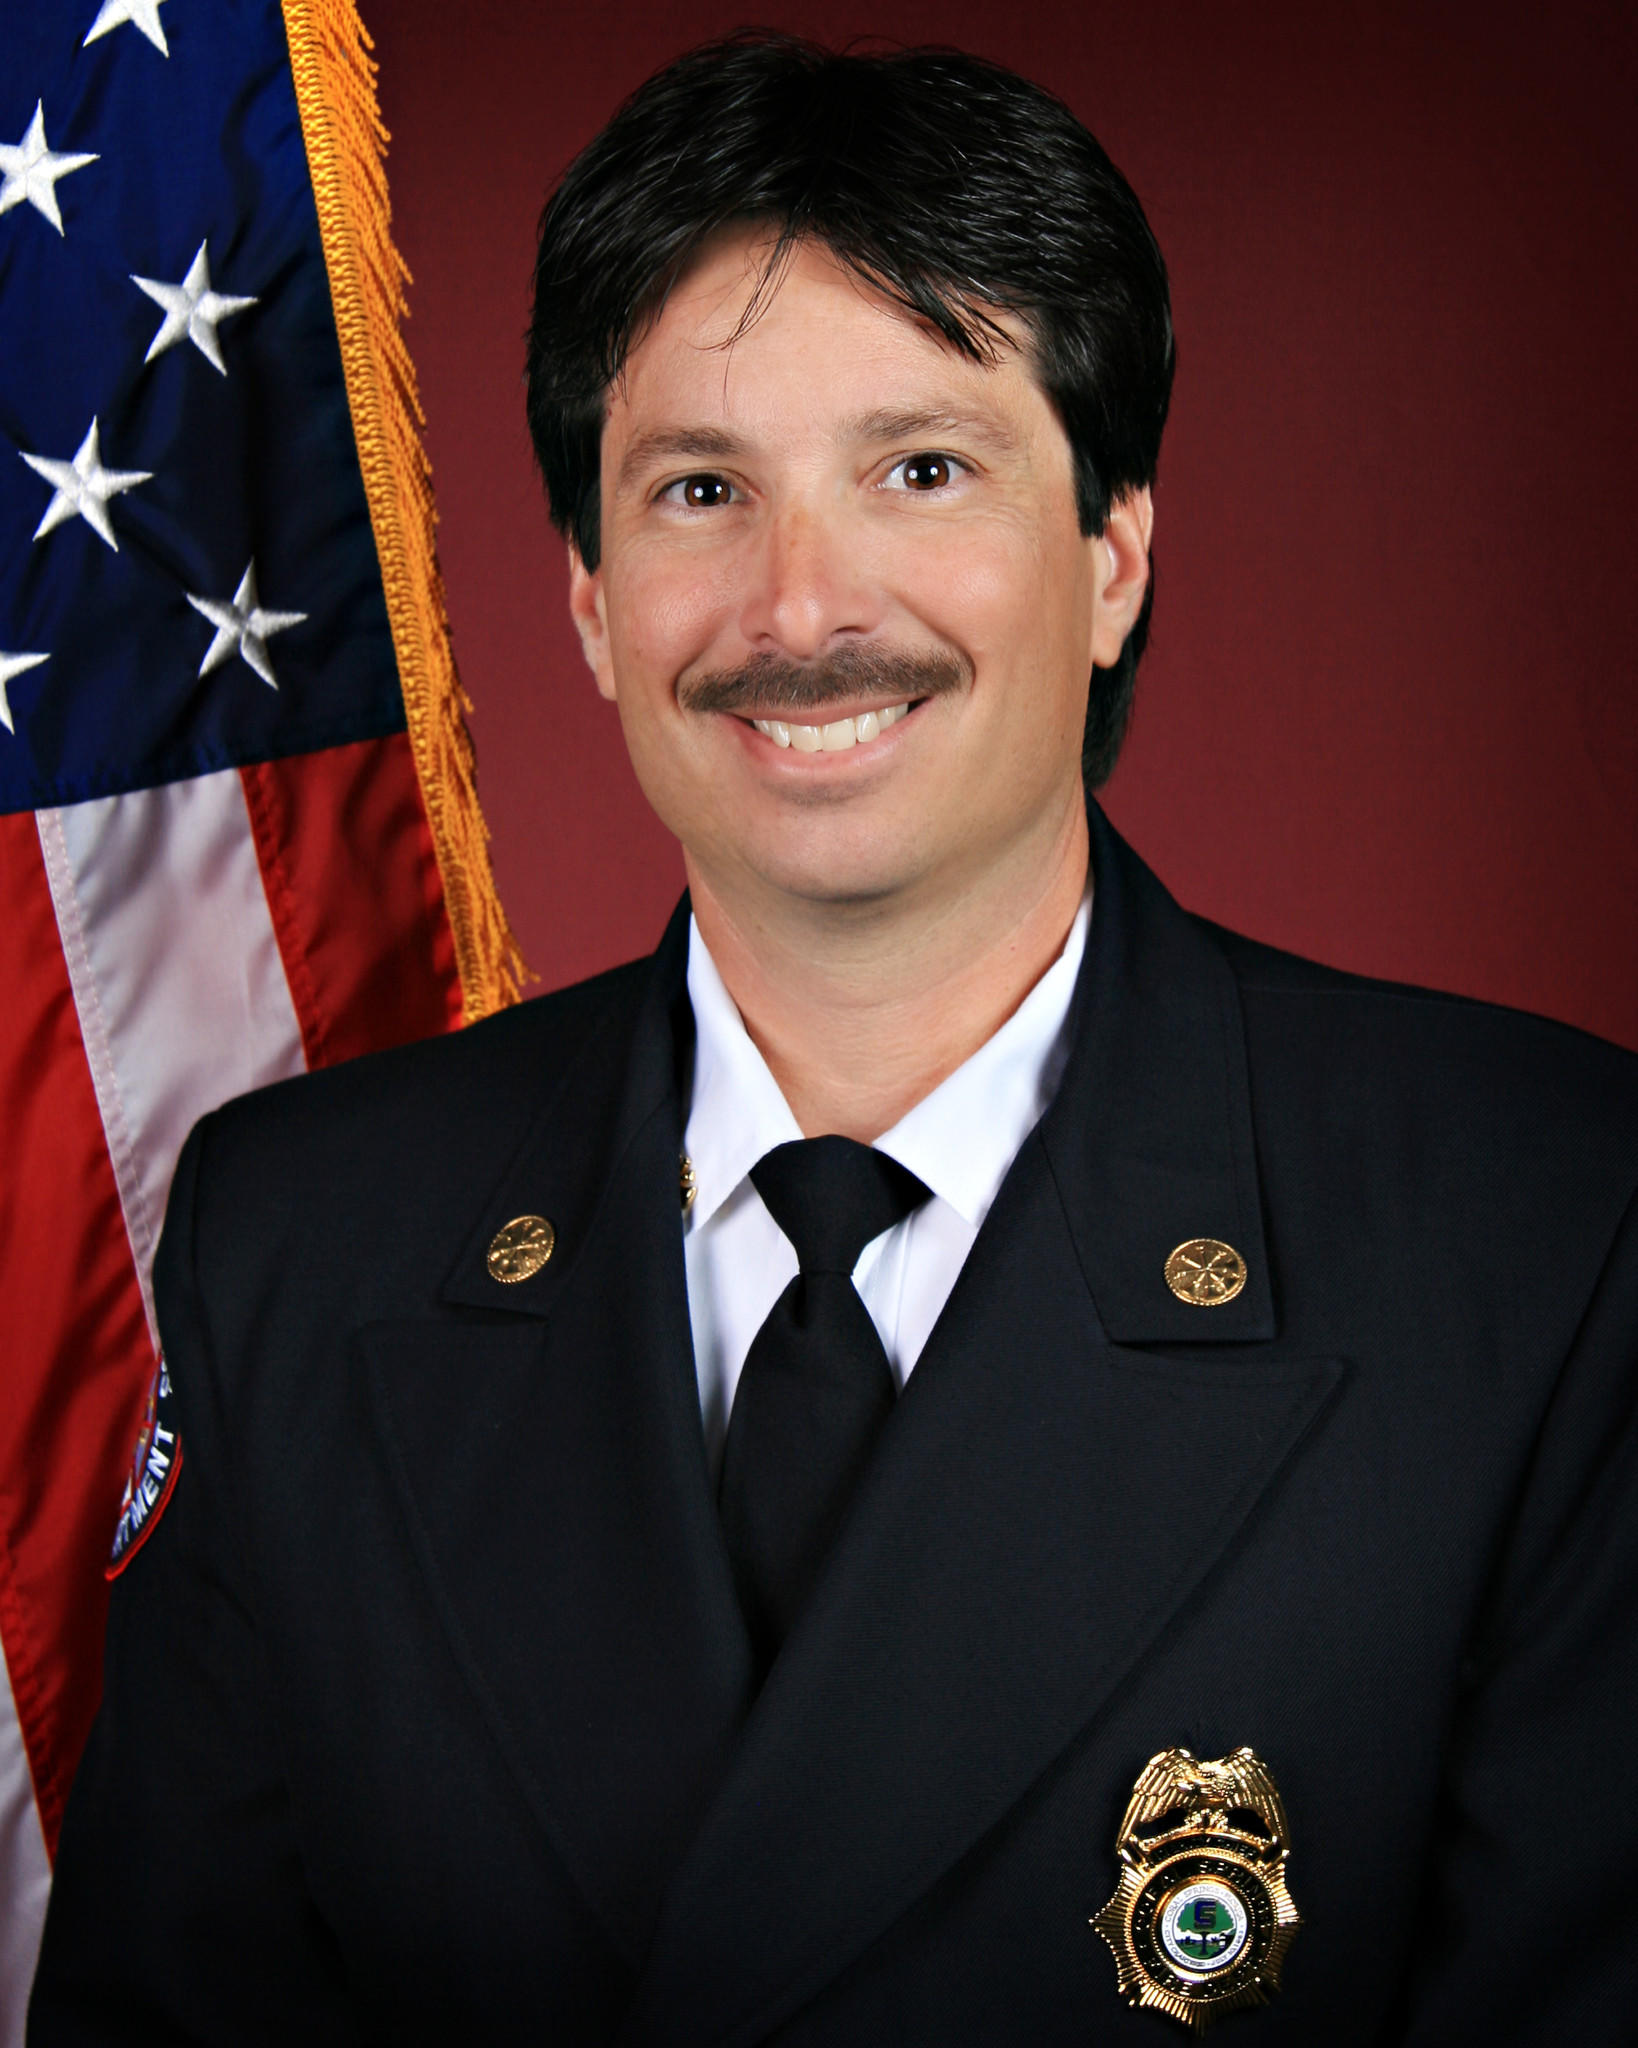 Coral Springs Fire Chief Frank Babinec